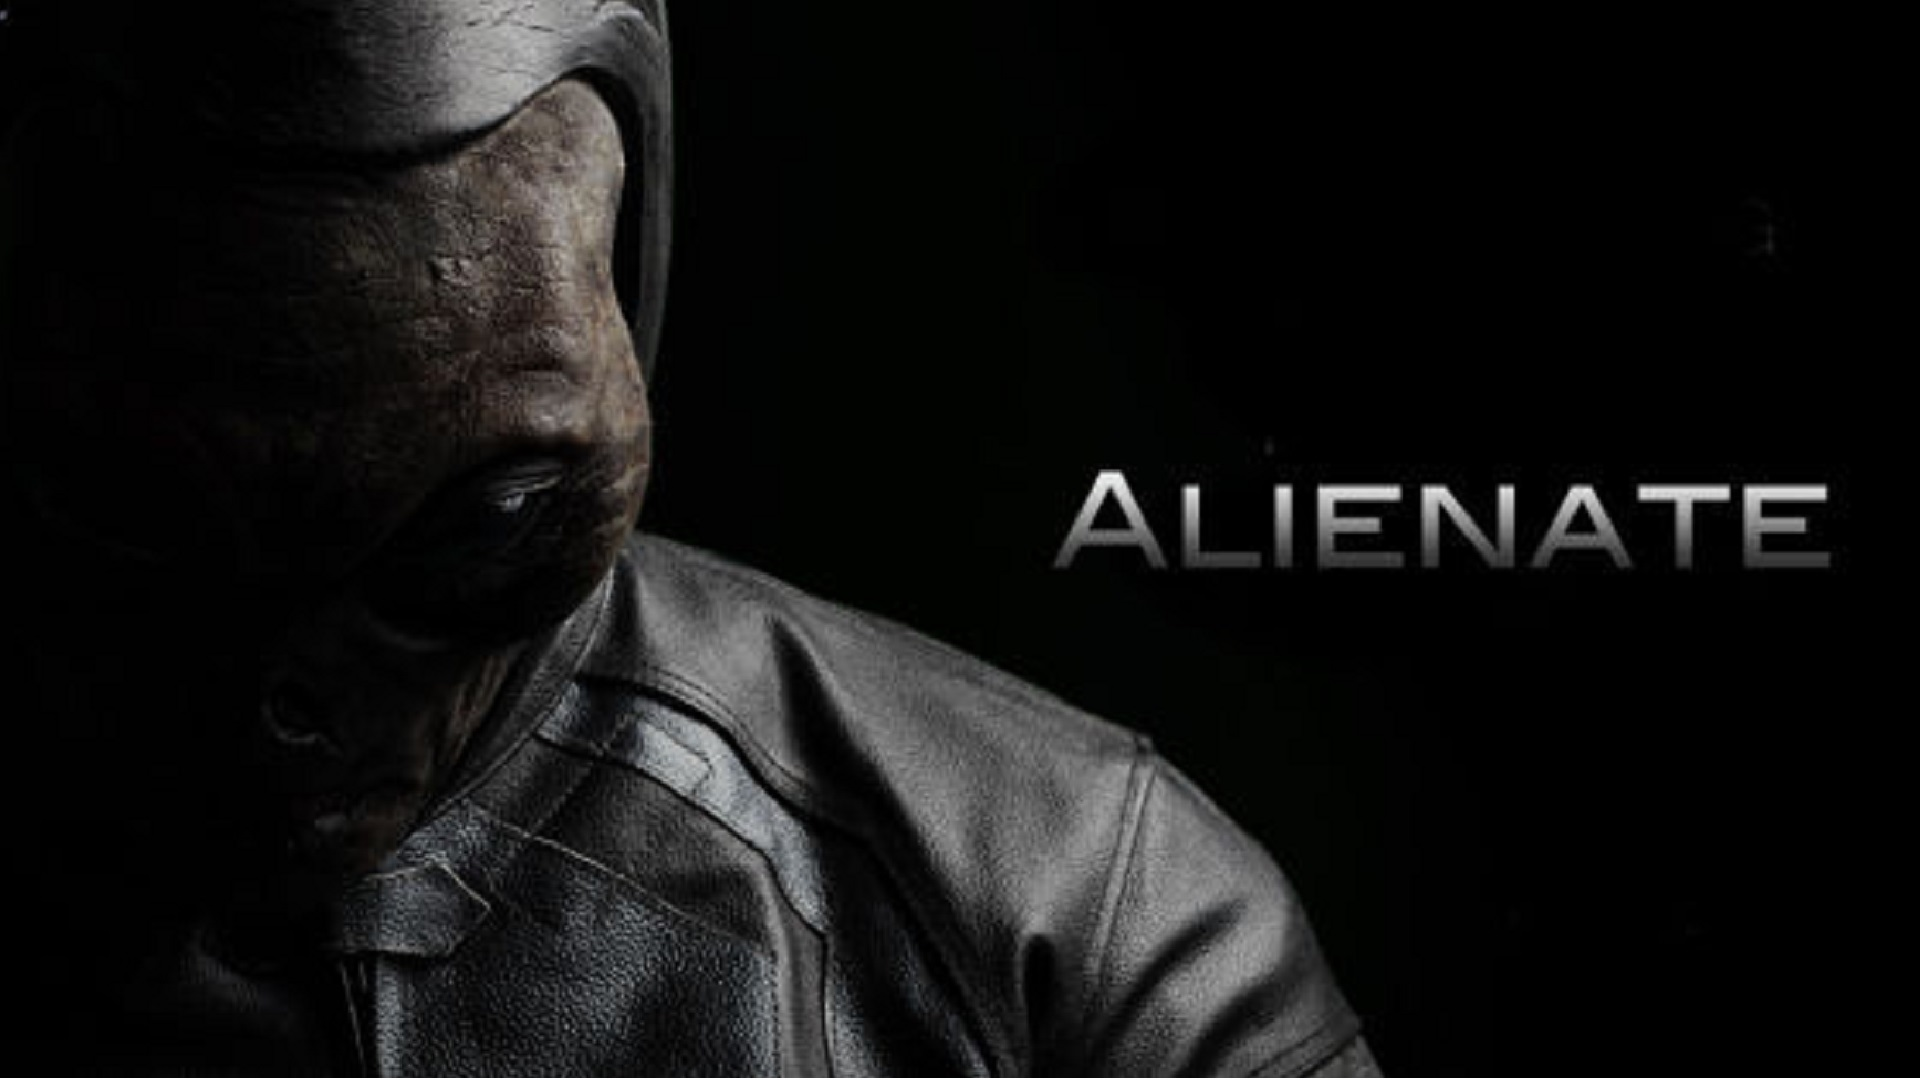 Trailer for the Alien Invasion film ALIENATE is About a Man on a 1920x1080